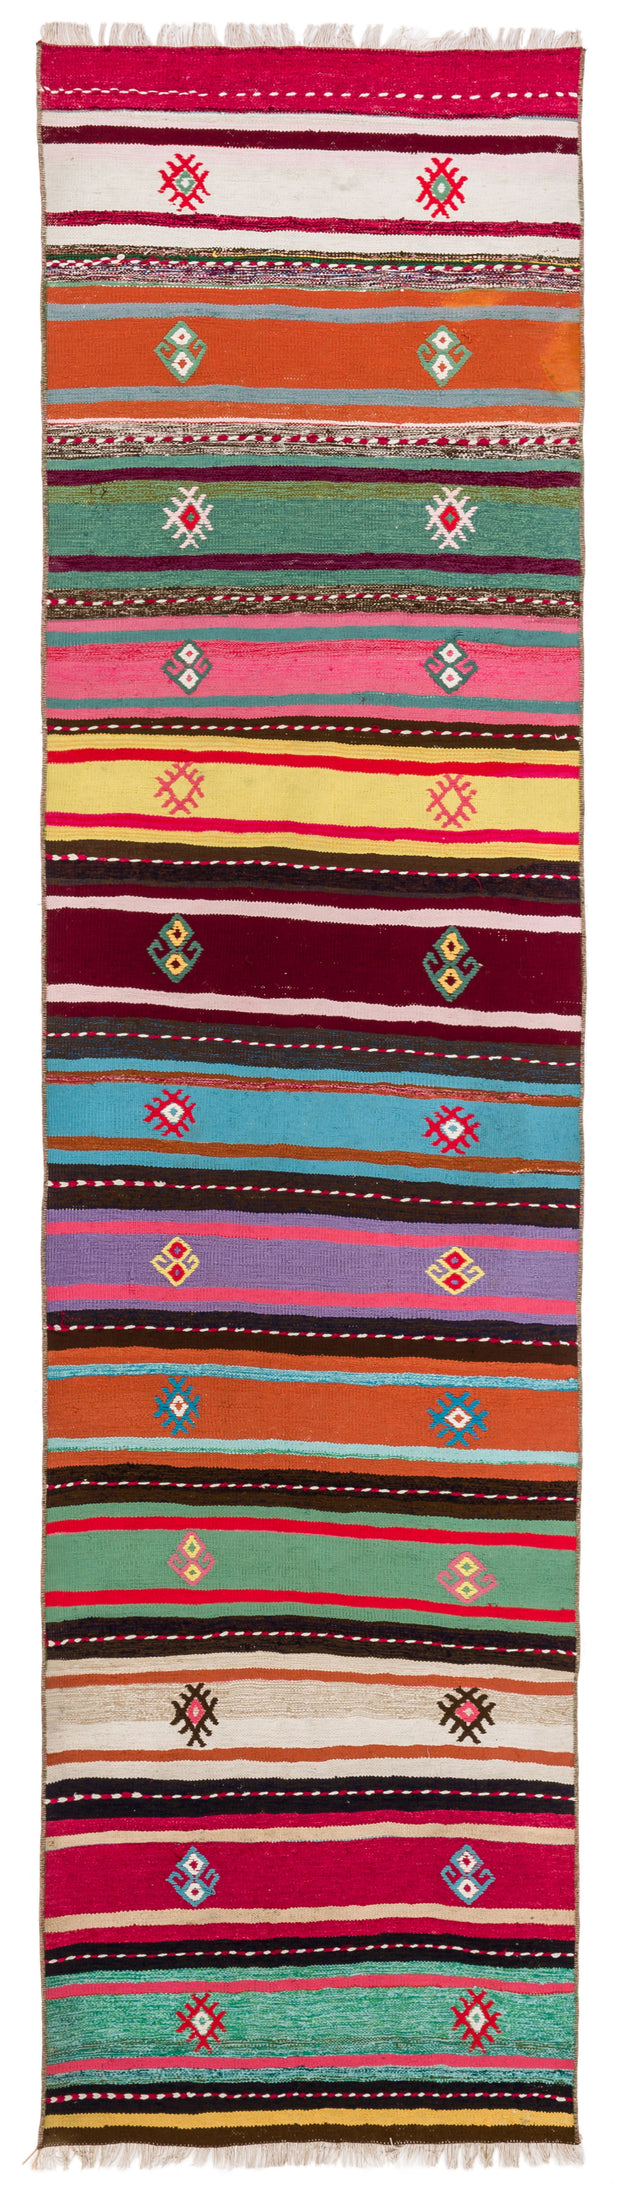 Turkish Kilim Runner Rug